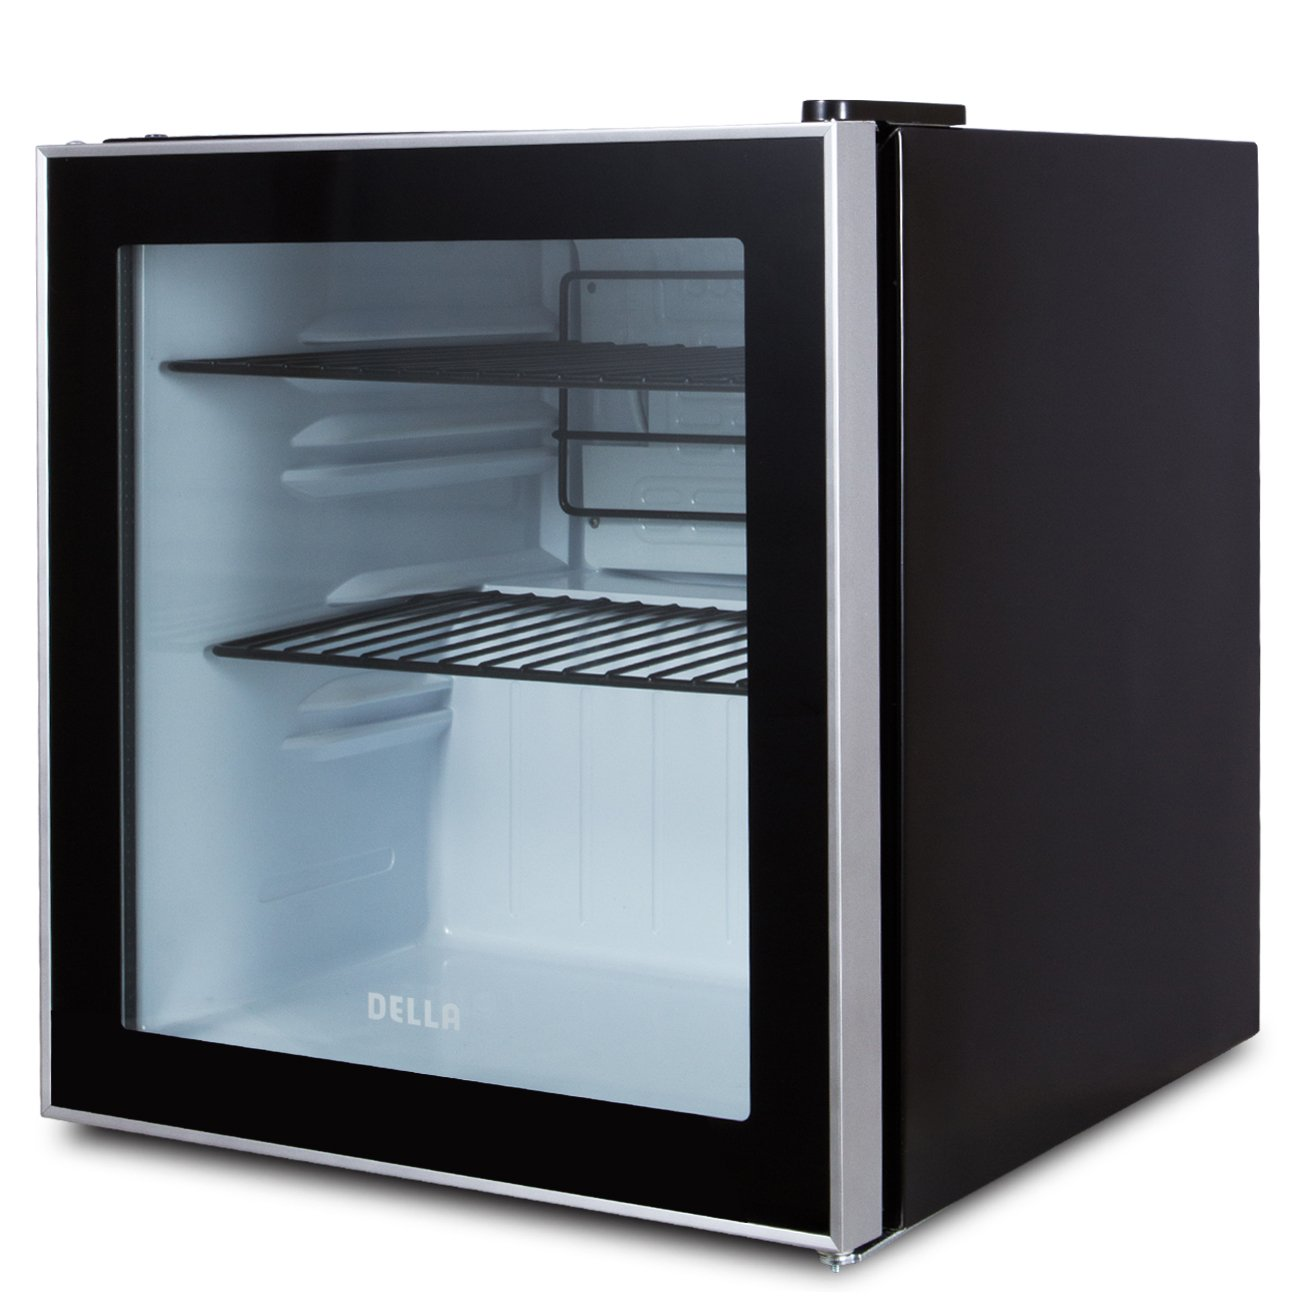 cosmetics drinks white schmick hus ss color stainless great fridge glass steel for mini brand model w with door bar